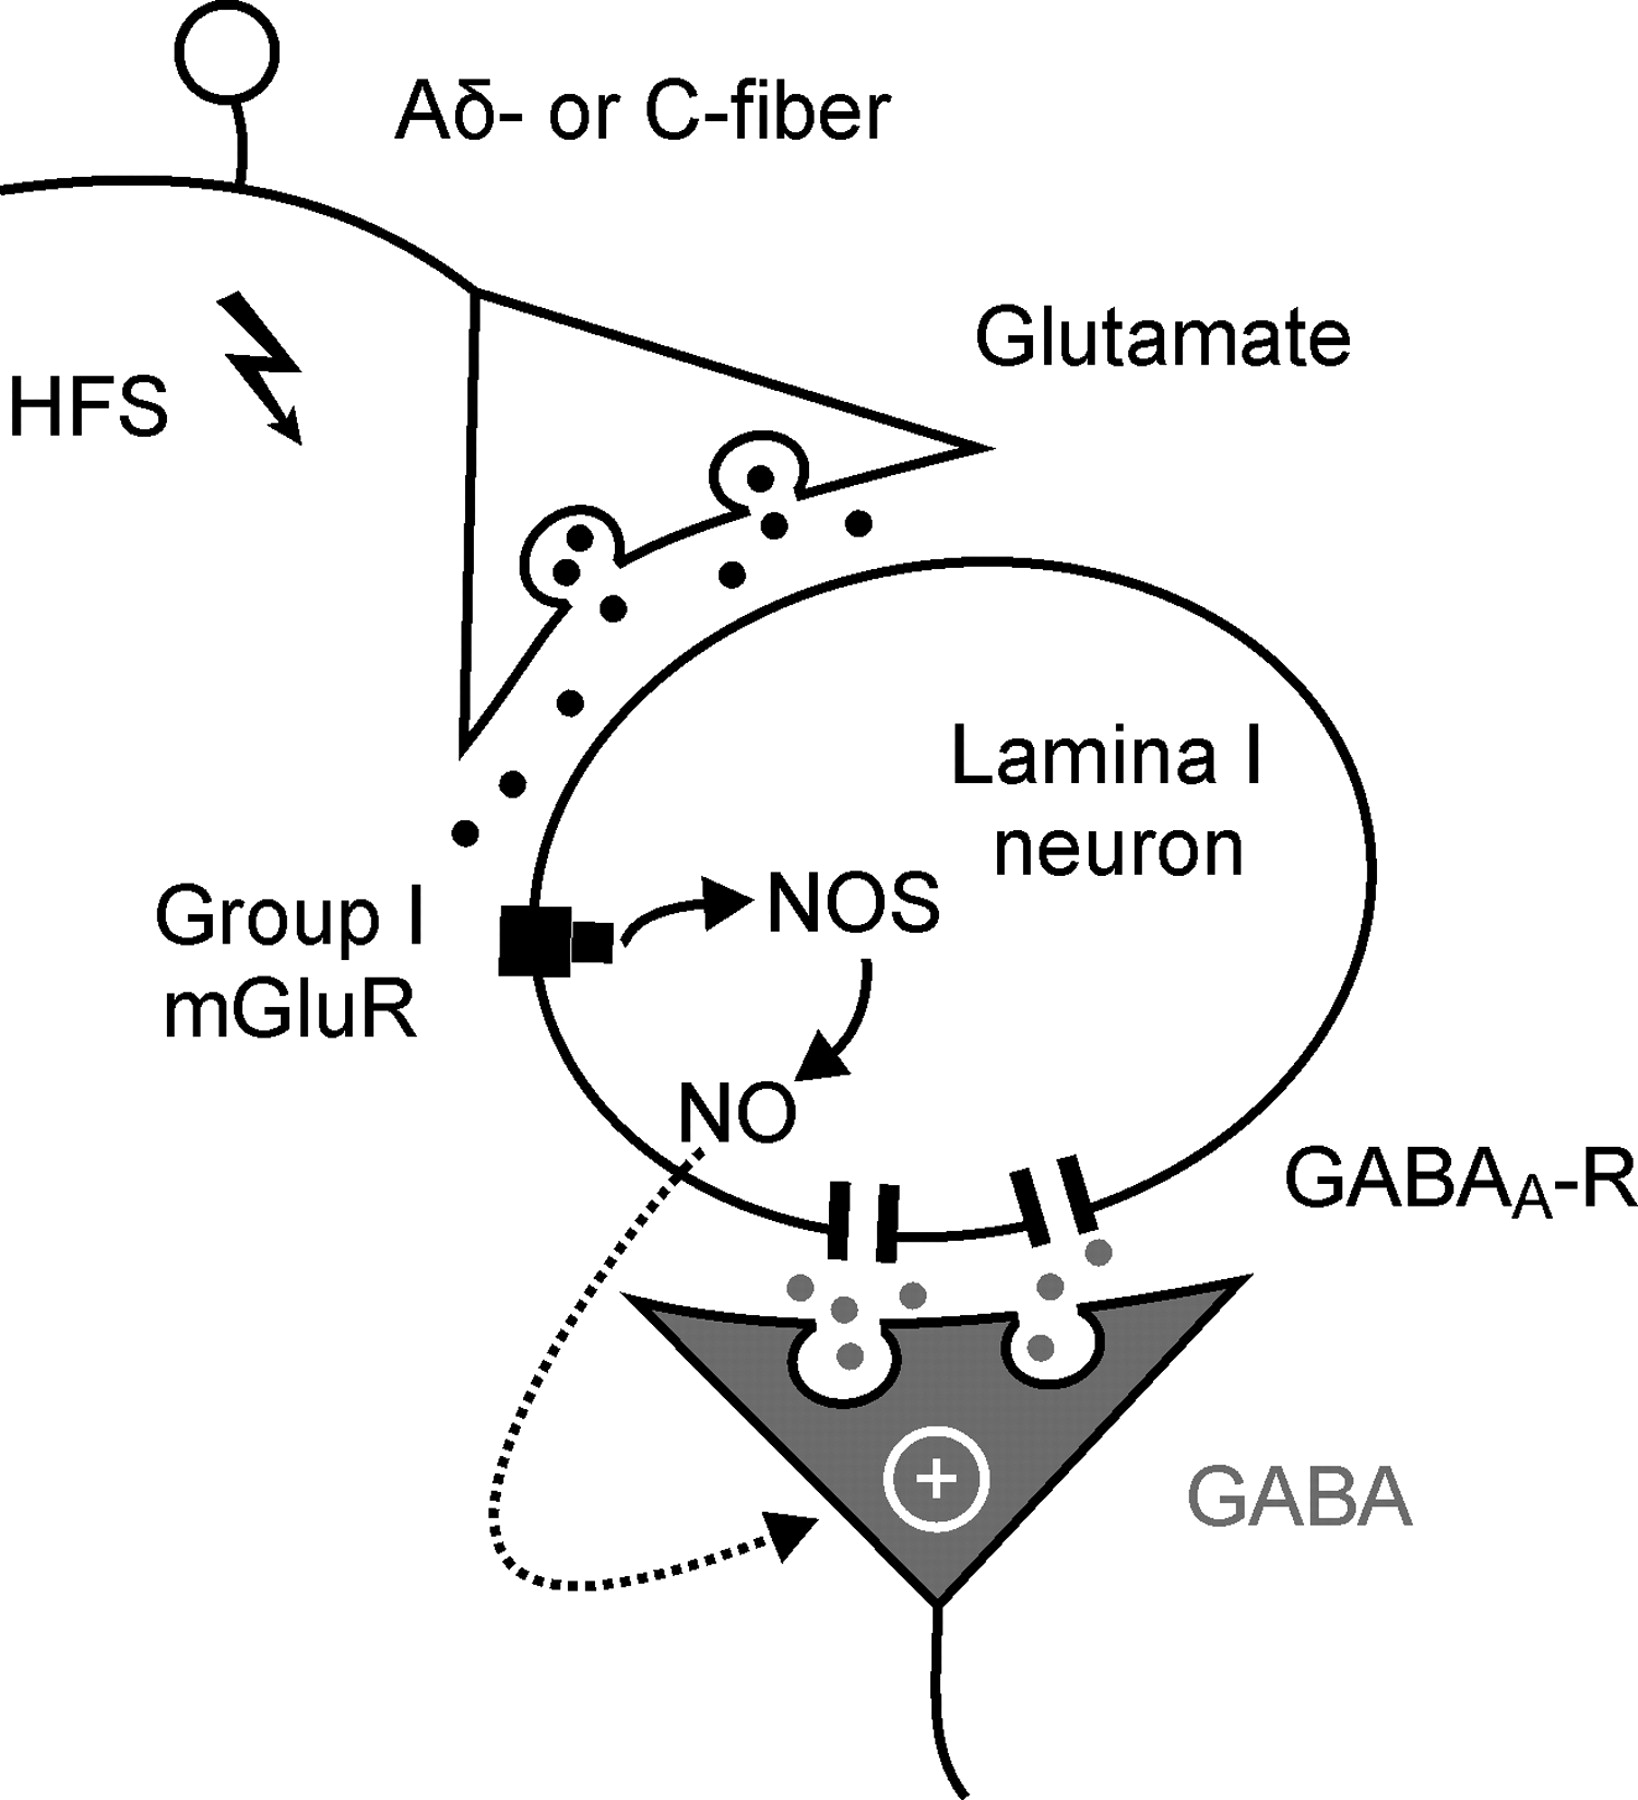 heterosynaptic long term potentiation at gabaergic synapses of Knee Diagram download figure